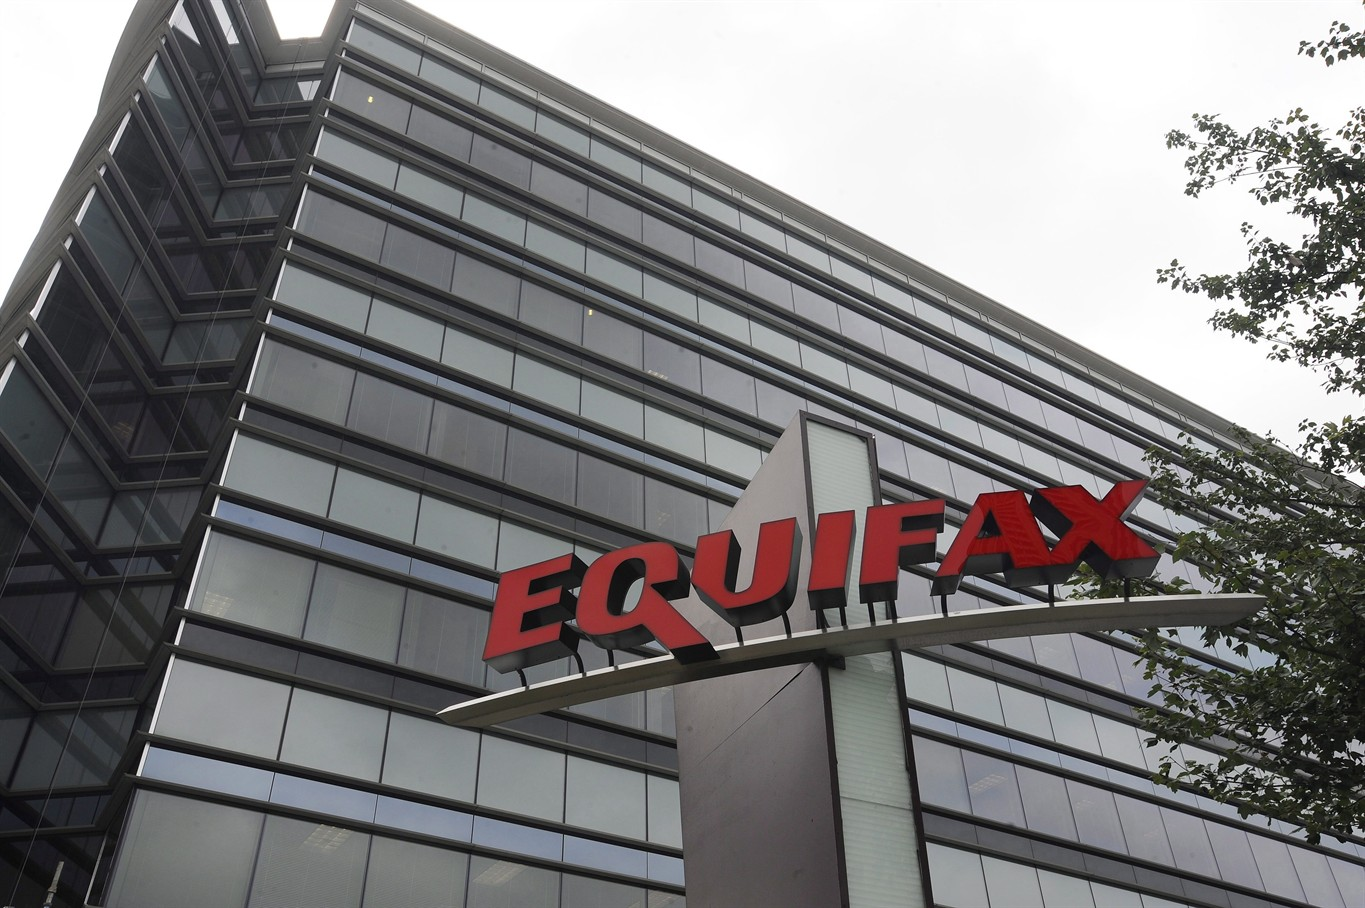 FTC warns of Equifax phone scam after data breach